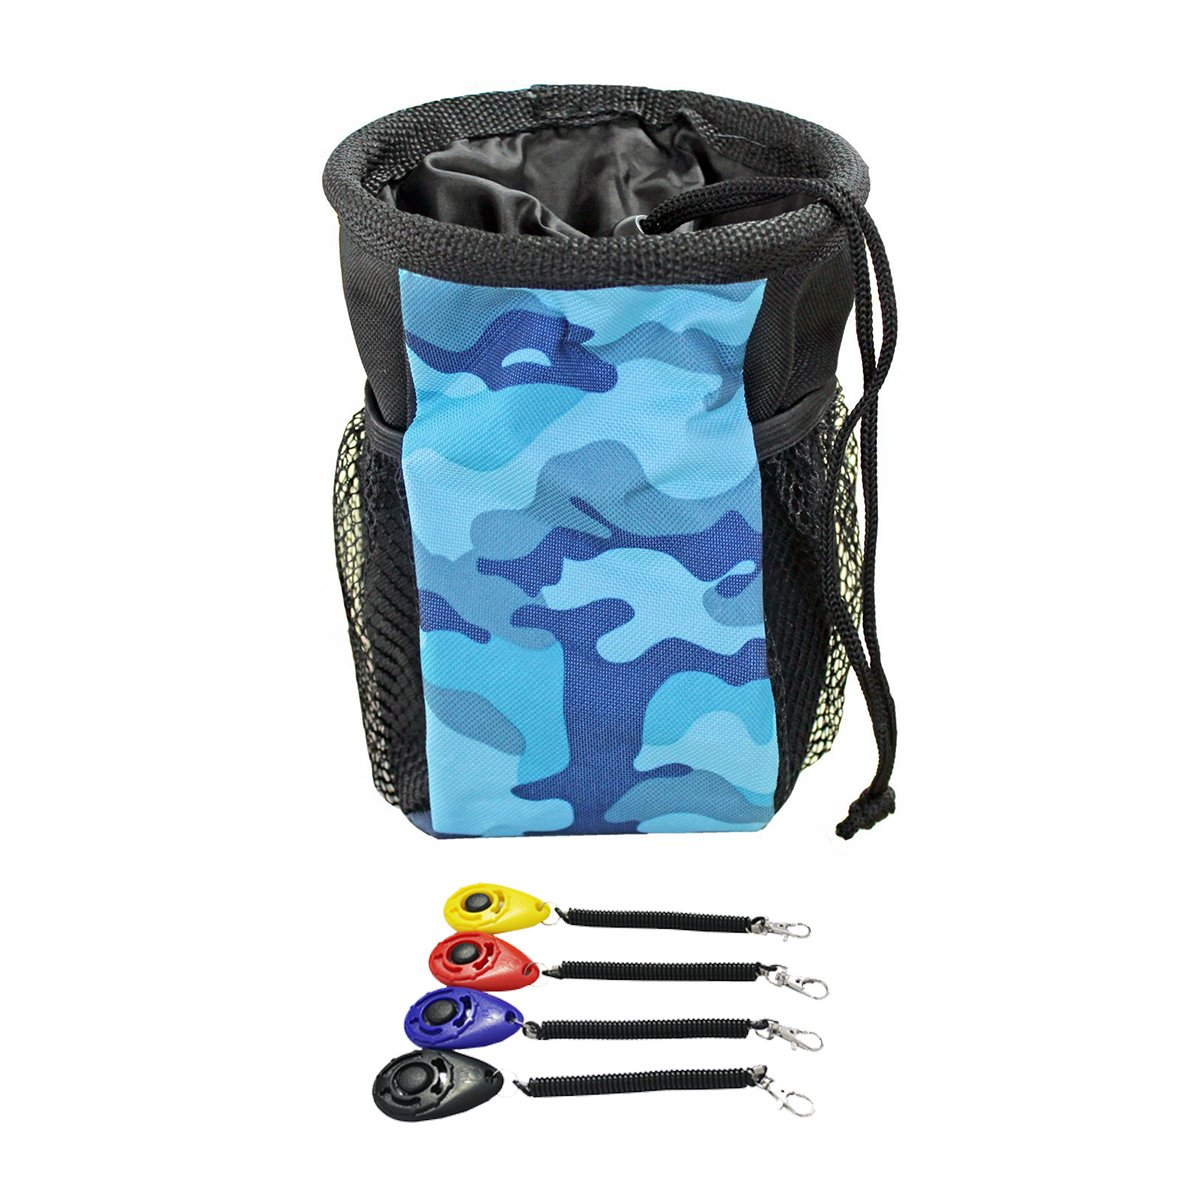 Ondoing Dog Training Clicker with Wrist Strap and Dog Treat Pouch with Adjustable Strap 1 Clicker + 1 Blue Camo Pouch